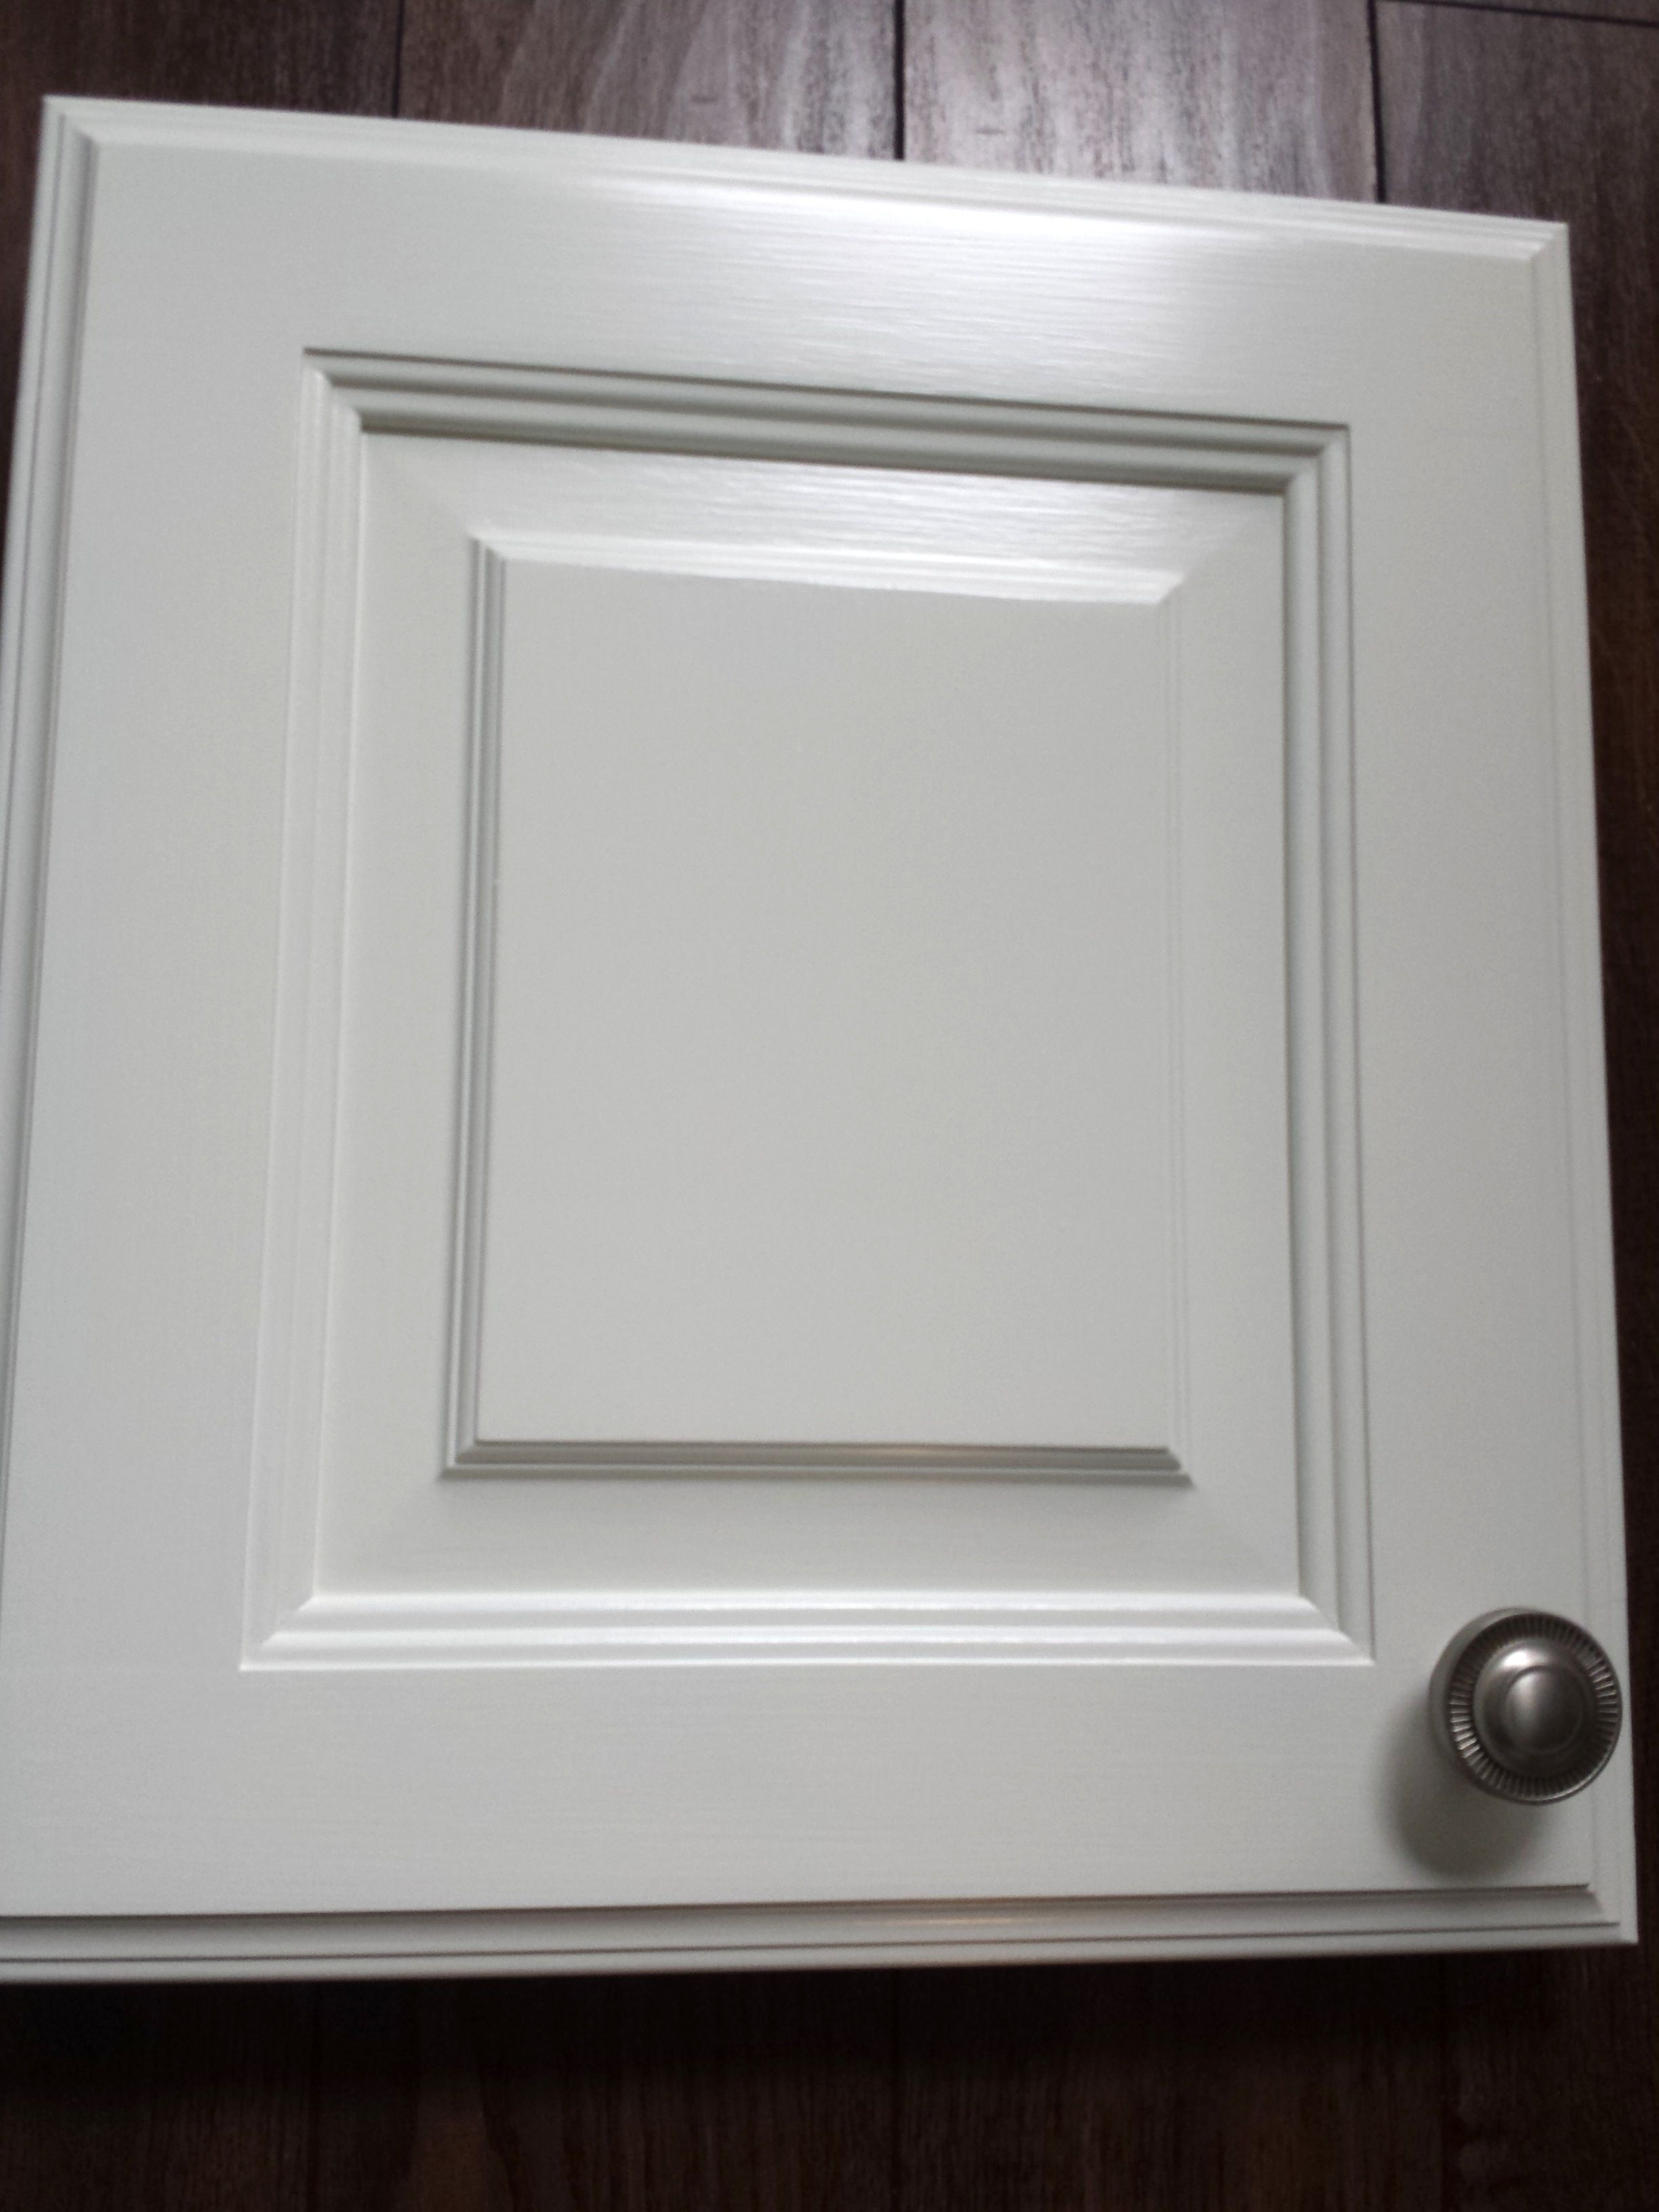 Benjamin Moore White Dove In Advance Paint Hardware From Lowes